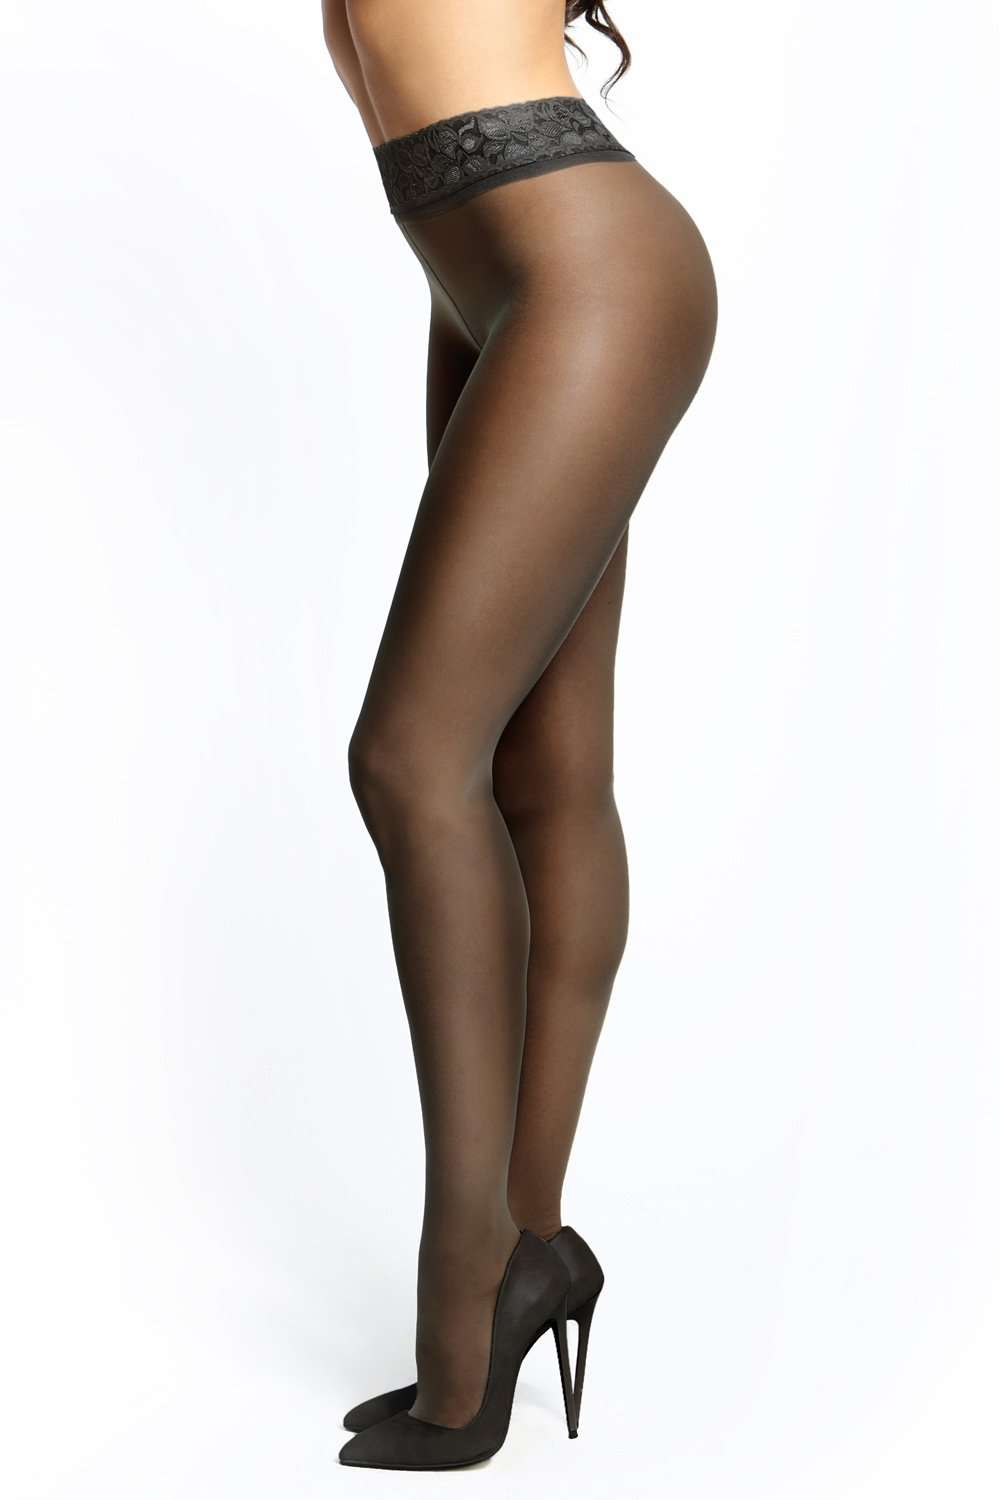 missO Open Crotch Lace Top Tights 20 Denier